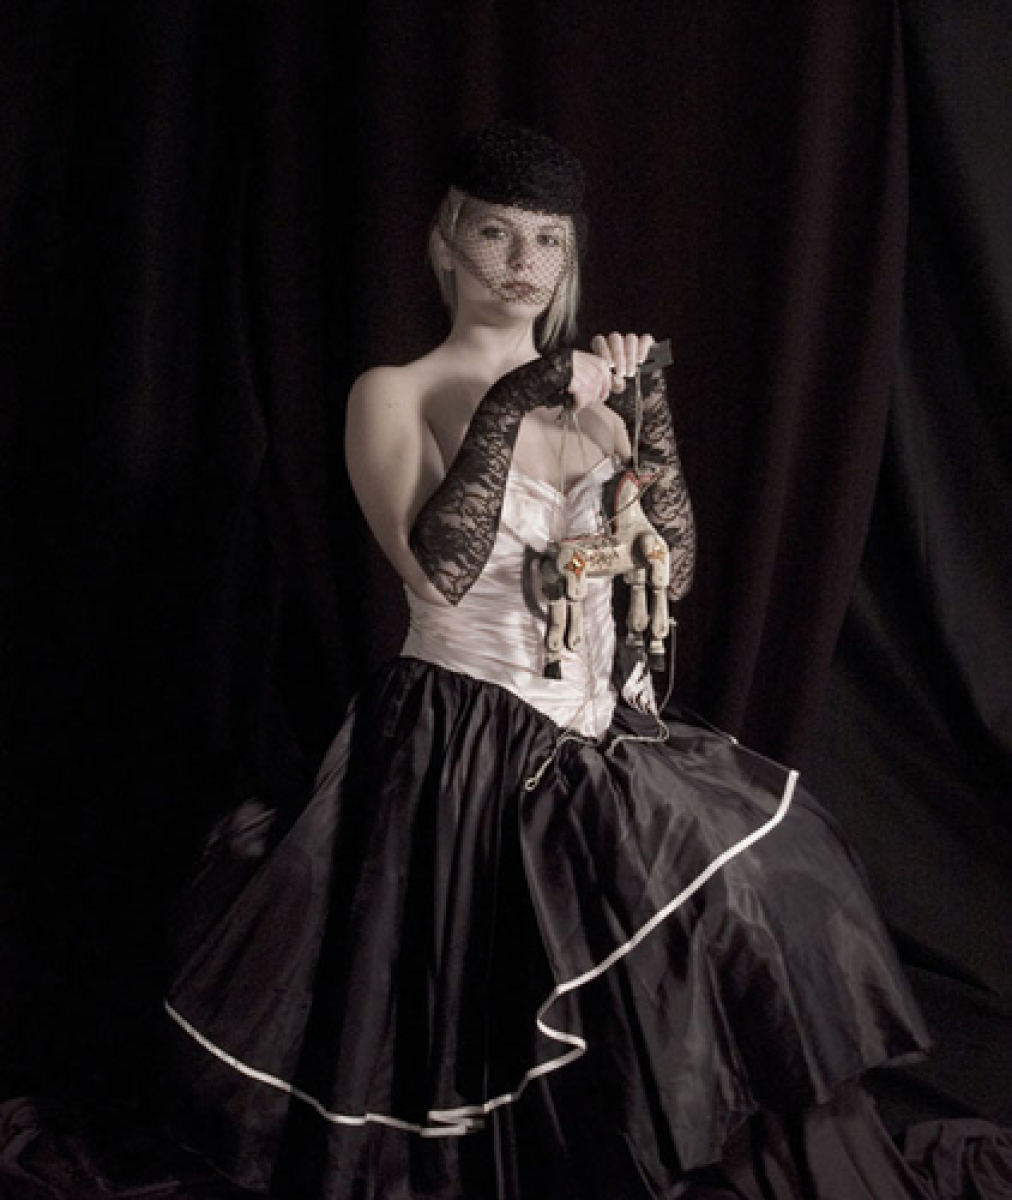 Ally With Vietnamese Horse Puppet, 2009 (large view)